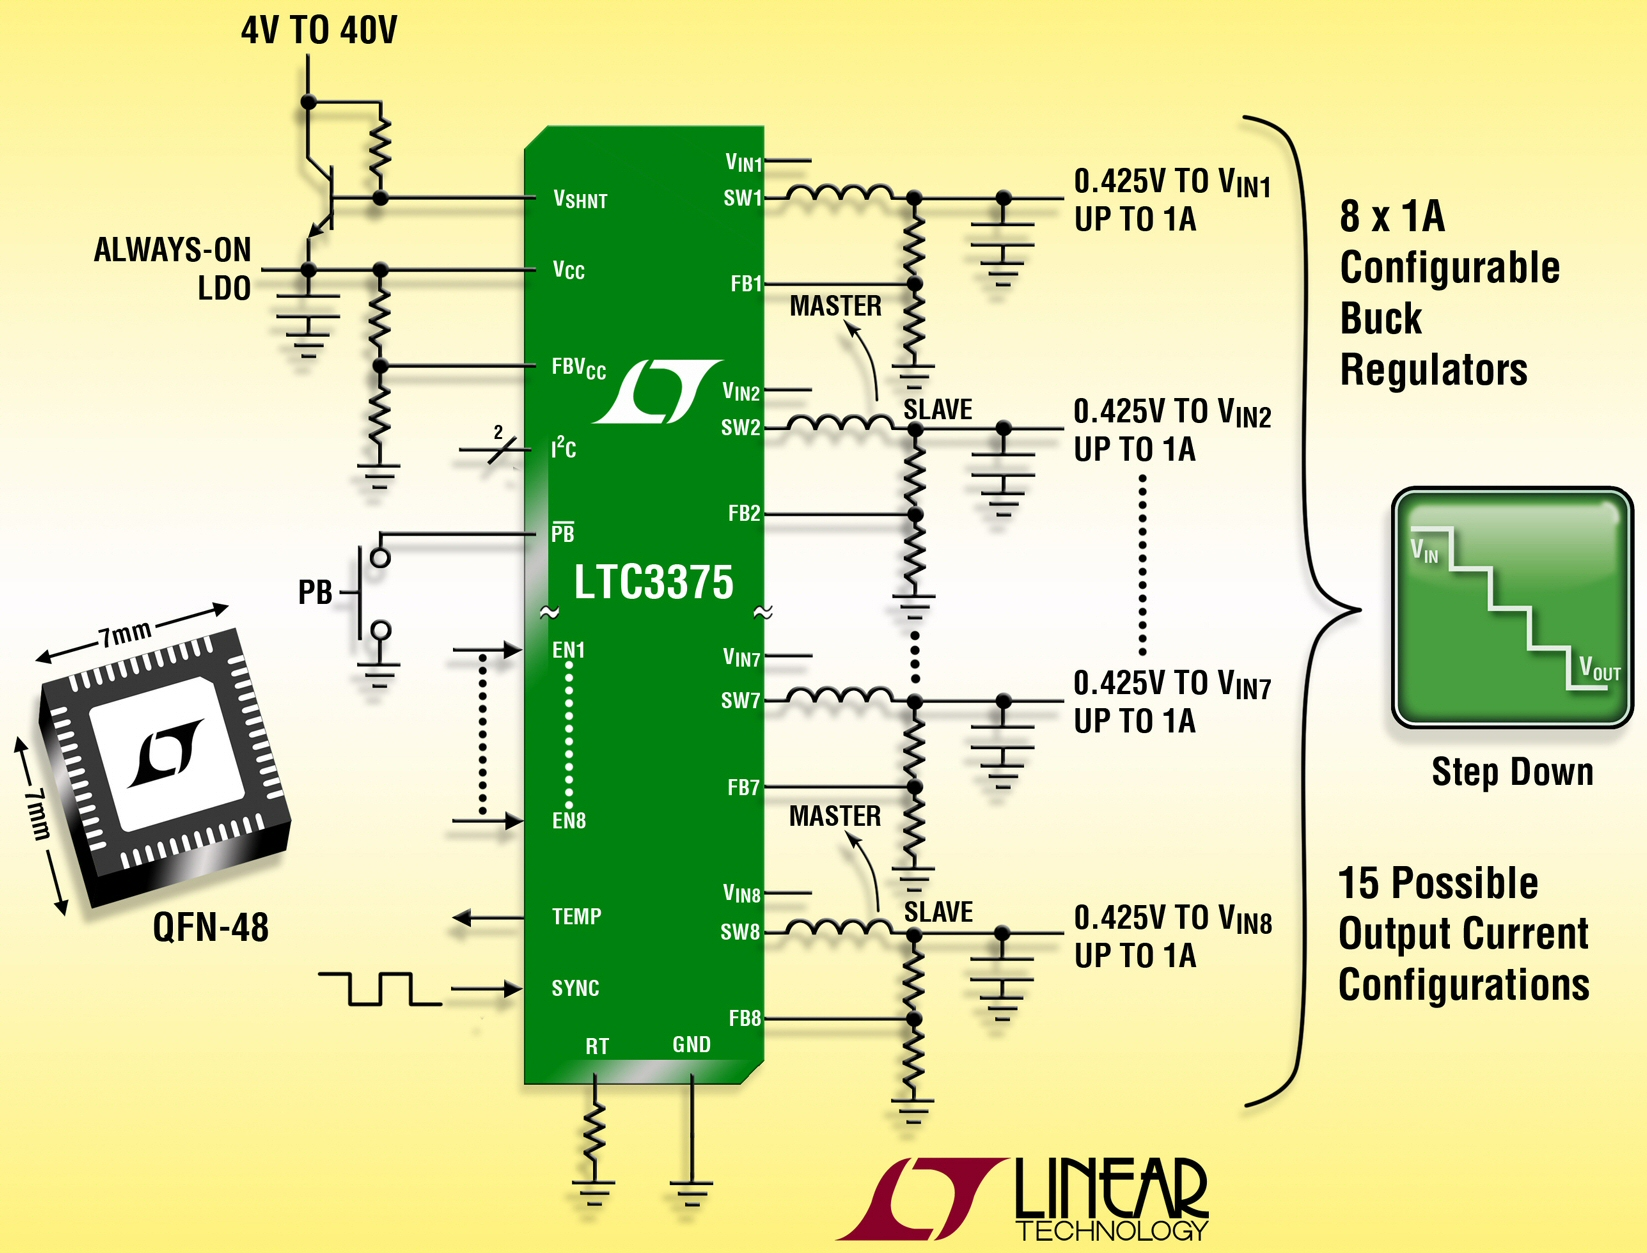 Octal configurable 1-A buck DC-DCs for multi-rail systems